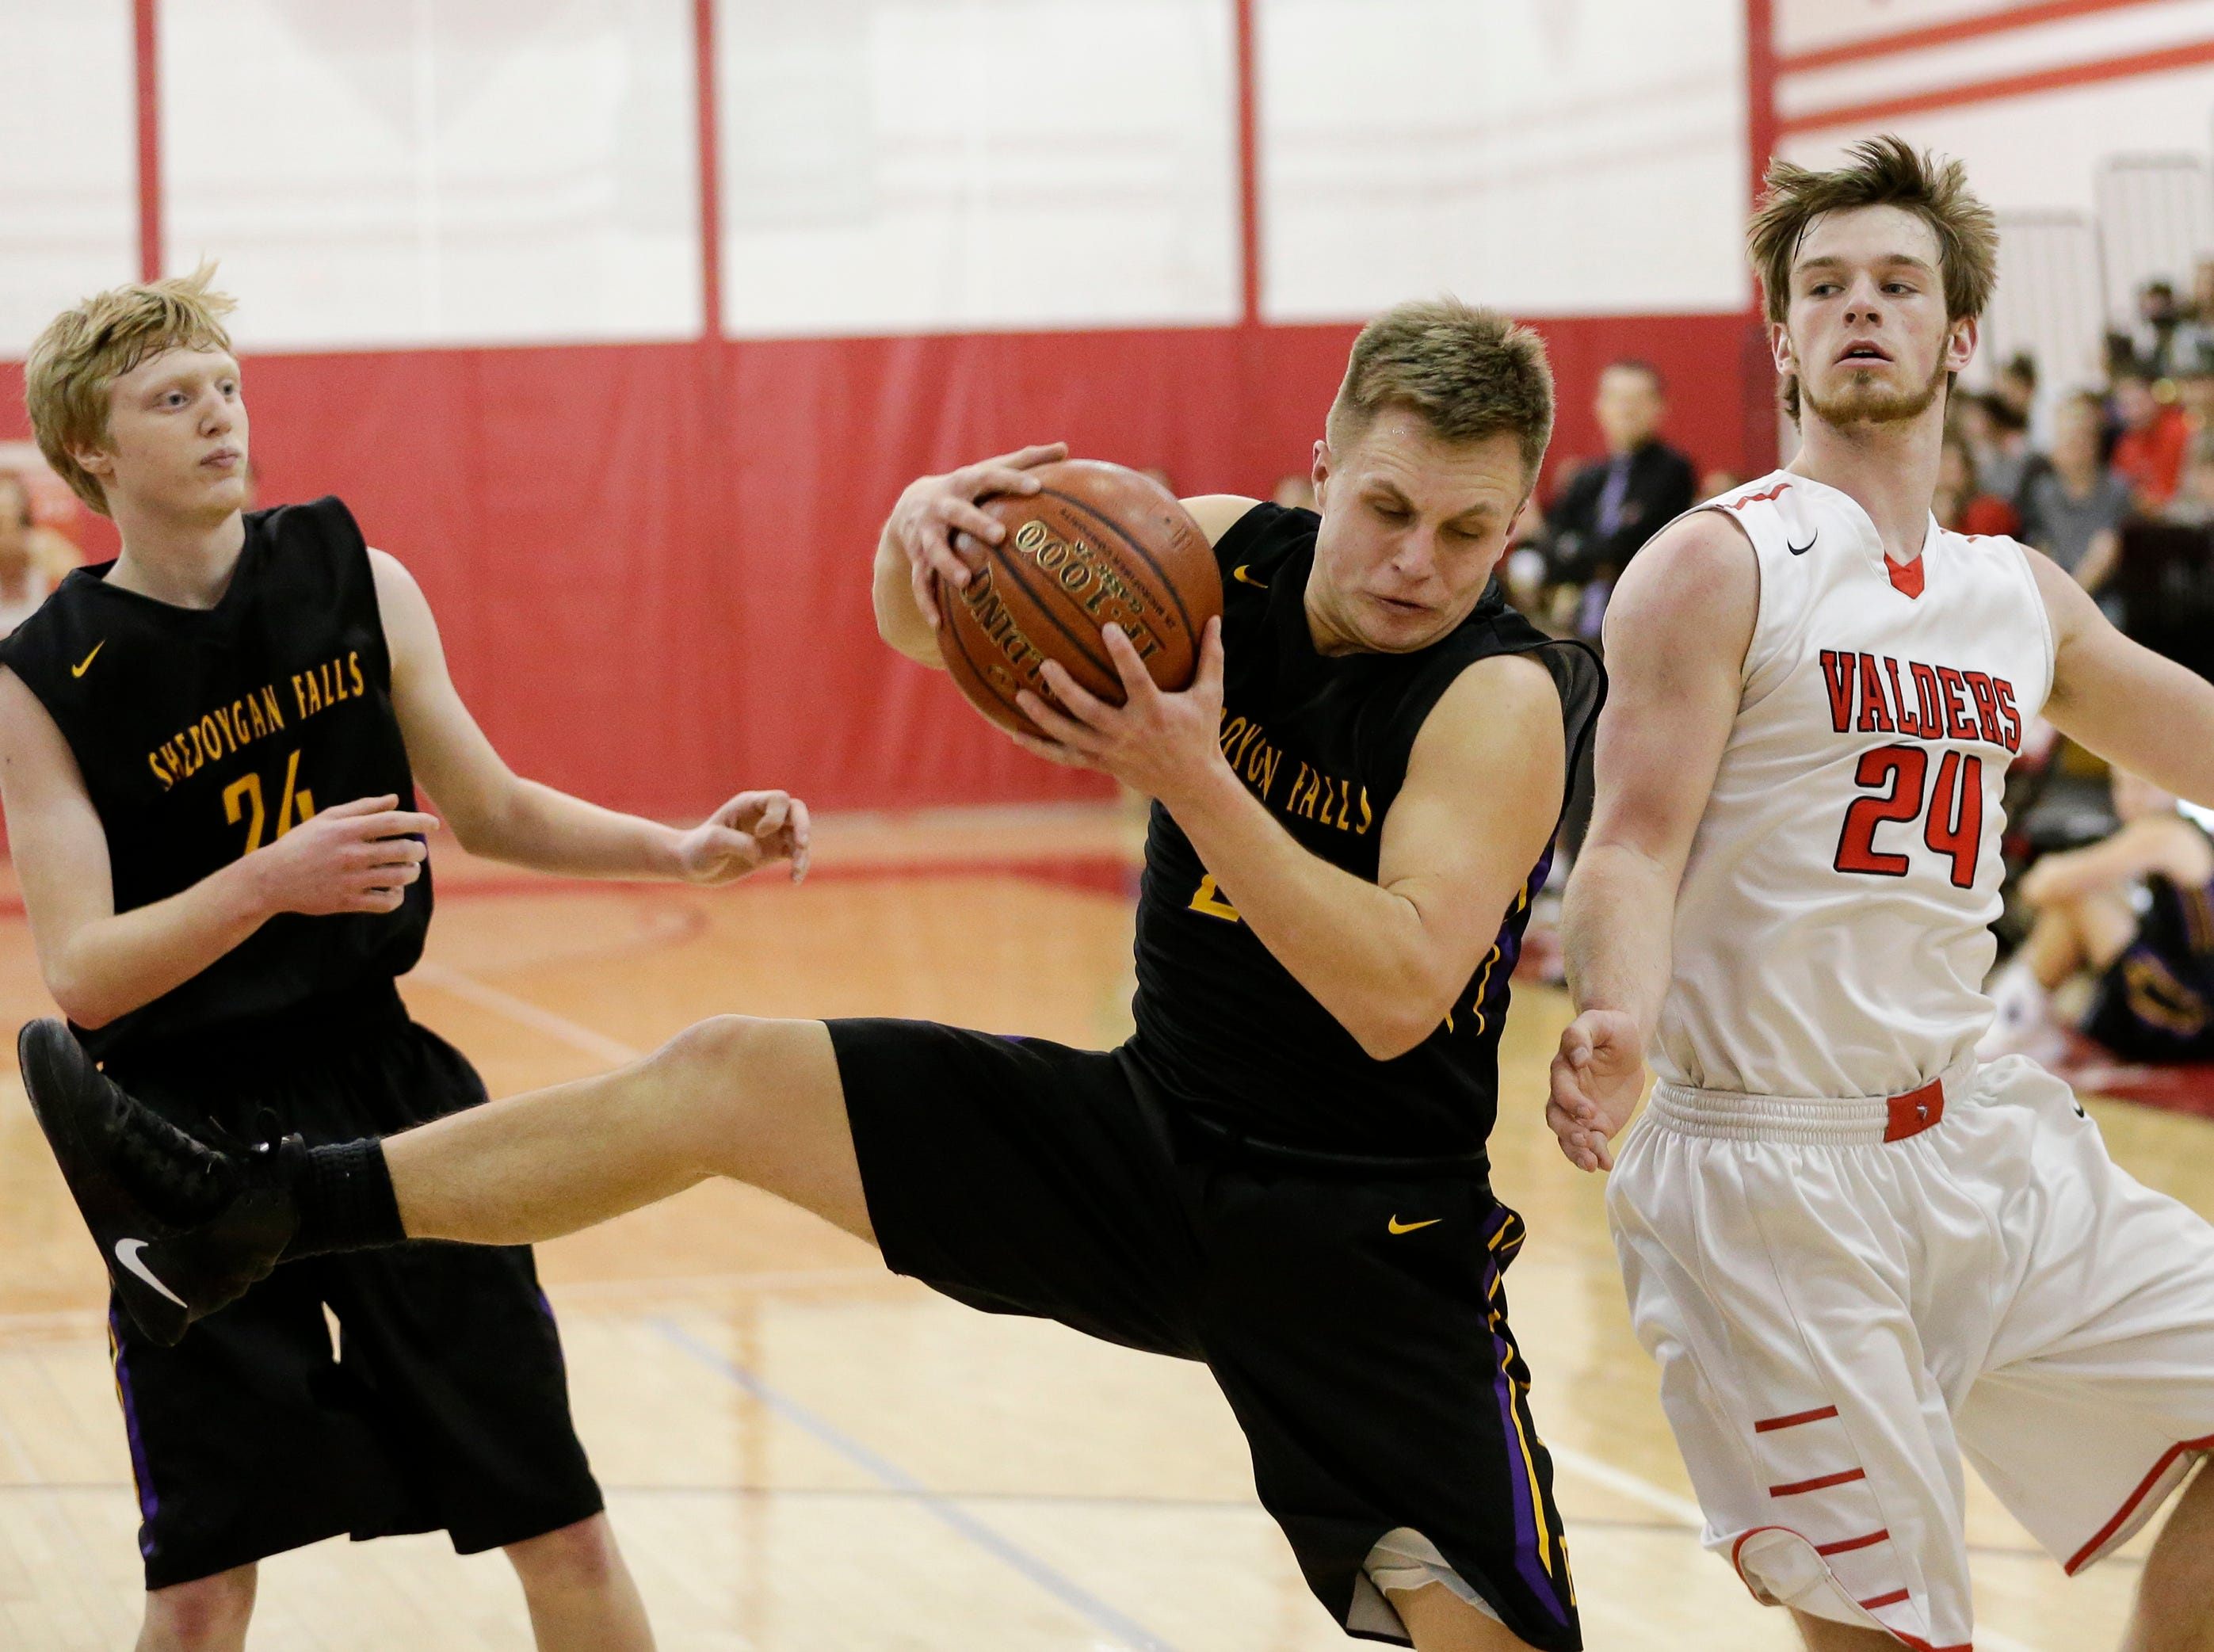 Sheboygan Falls' Alex Schmitt (2) rebounds against Valders at Valders High School Friday, February 8, 2019, in Valders, Wis. Joshua Clark/USA TODAY NETWORK-Wisconsin